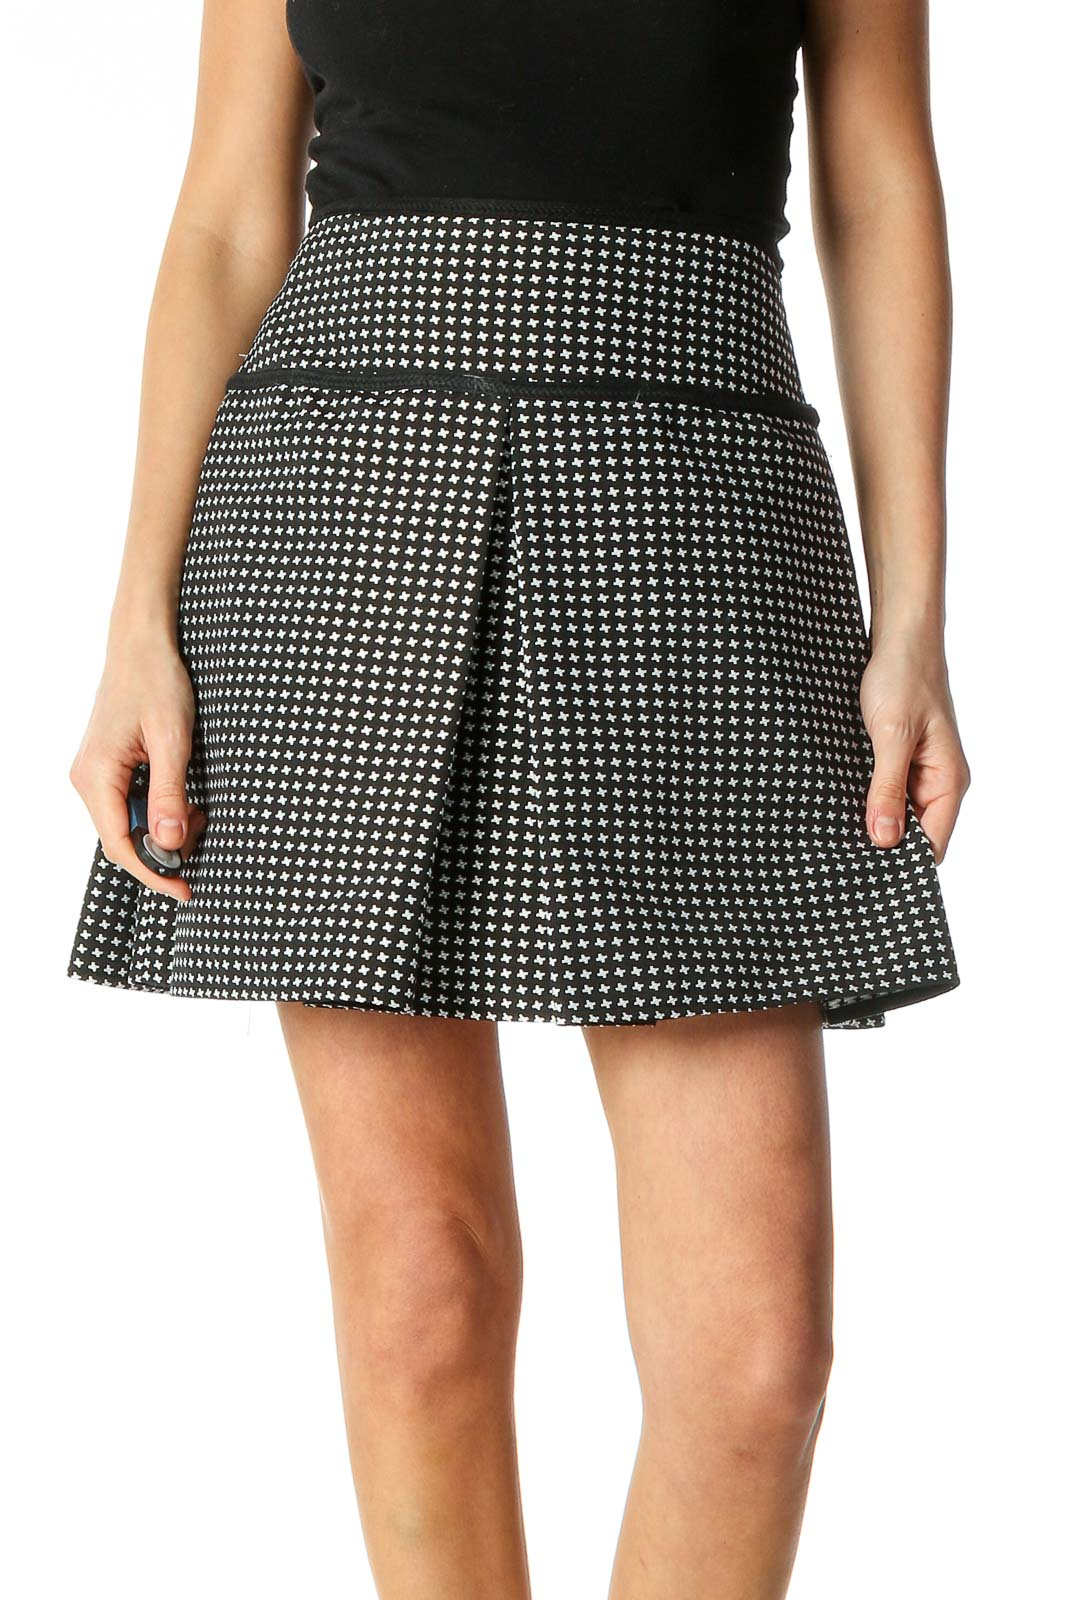 Black Houndstooth Chic A-Line Skirt Front